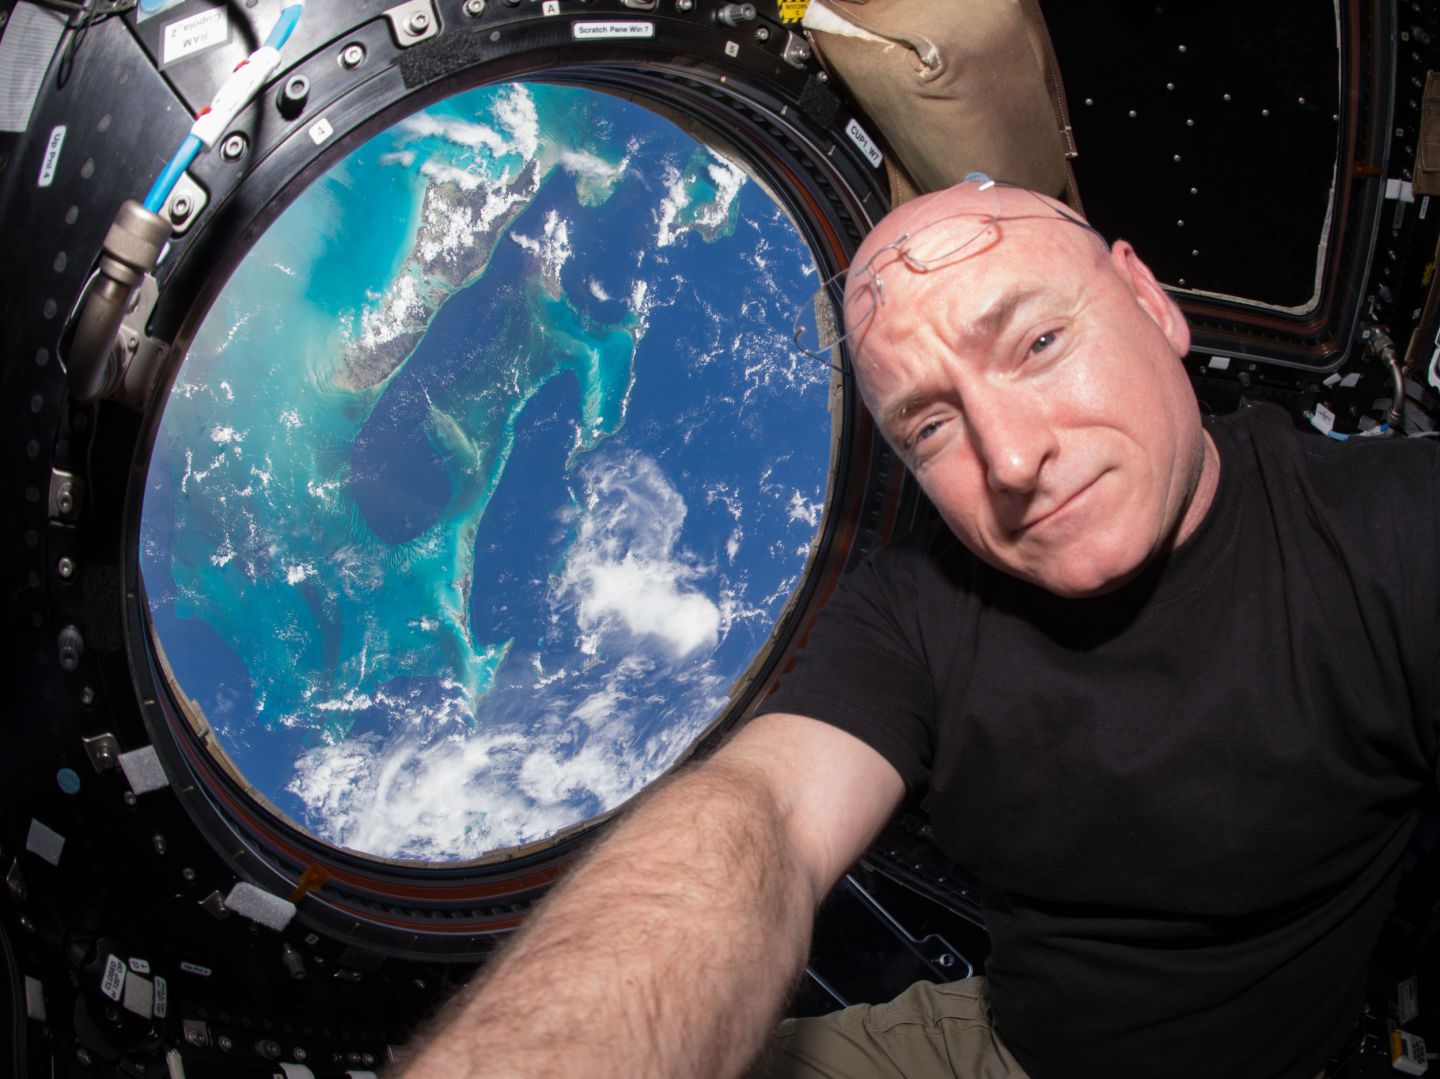 NASA astronaut Scott Kelly takes a selfie inside the cupola, a special module that provides a 360-degree view of Earth. Kelly and Russian cosmonaut Mikhail Kornienko have spent nearly a year aboard the International Space Station. NASA